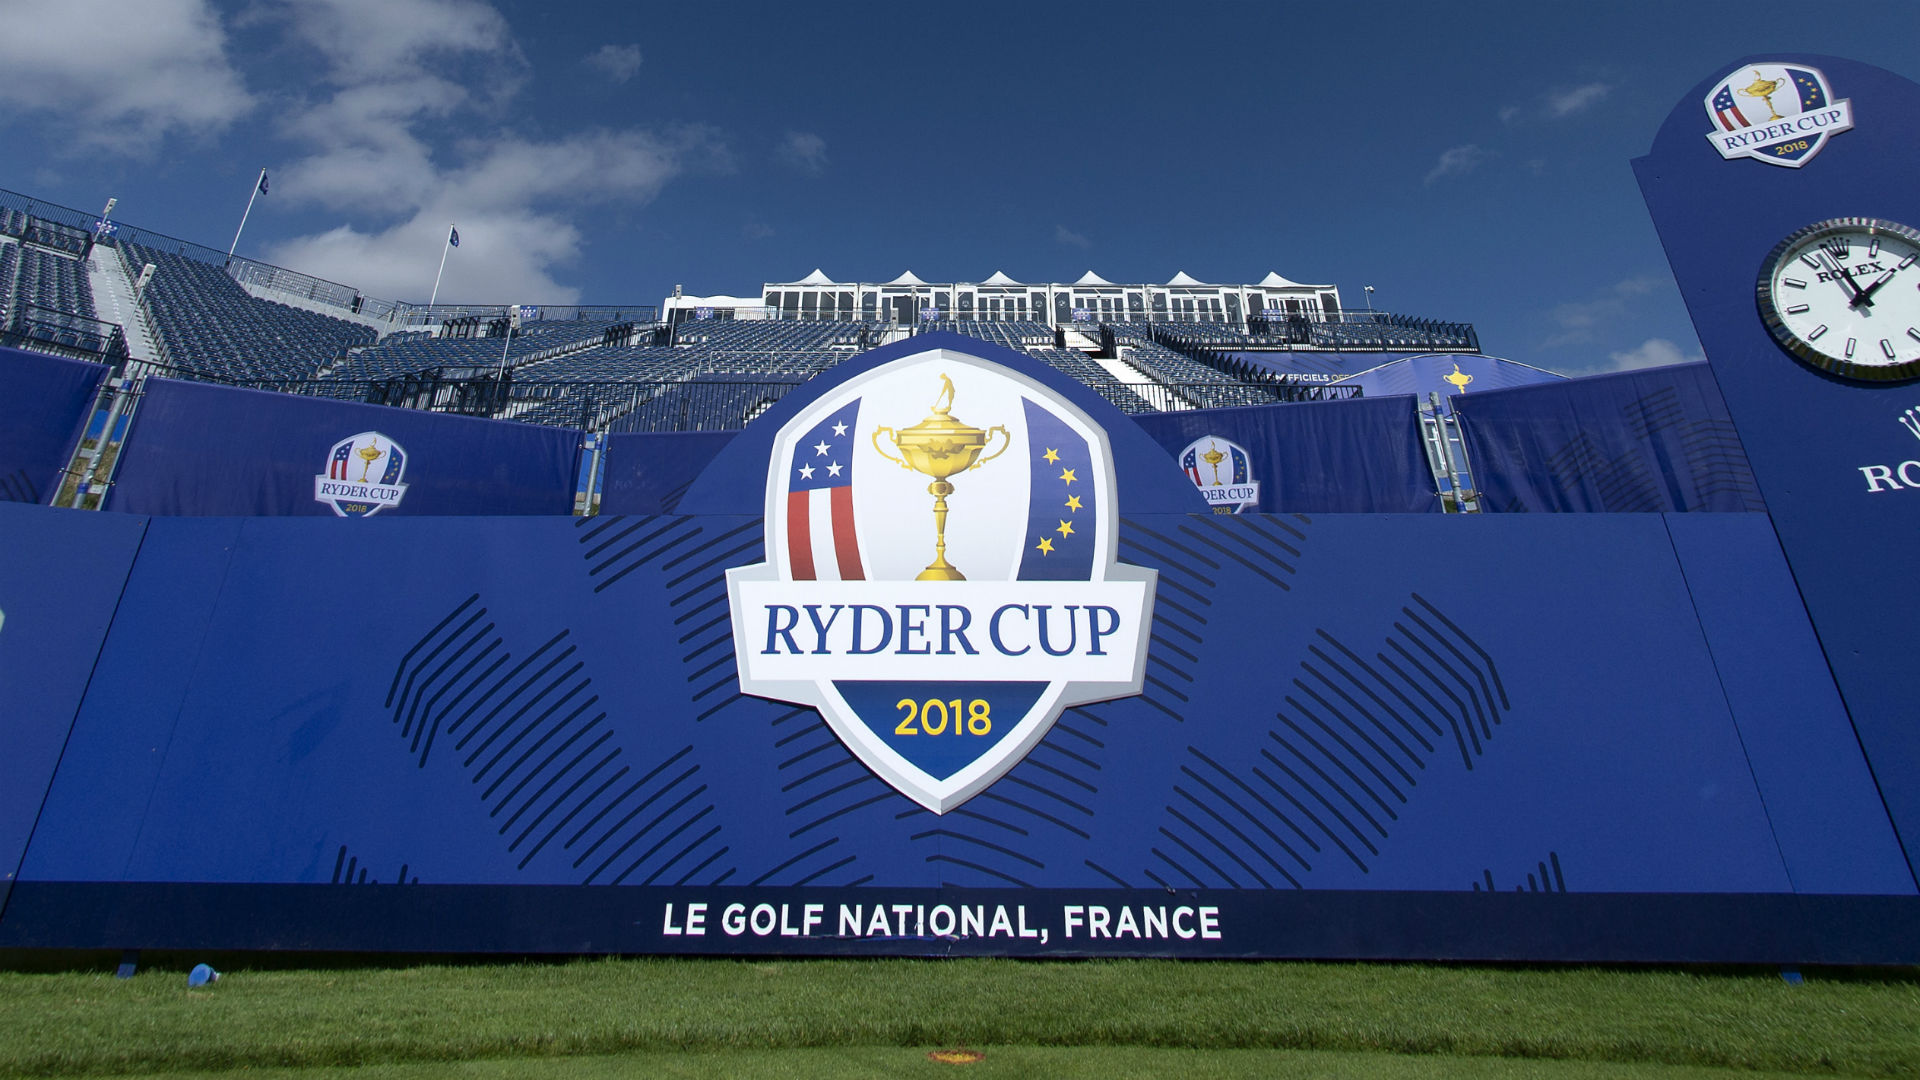 Ryder Cup 2018: A sporting spectacular you cannot afford to miss